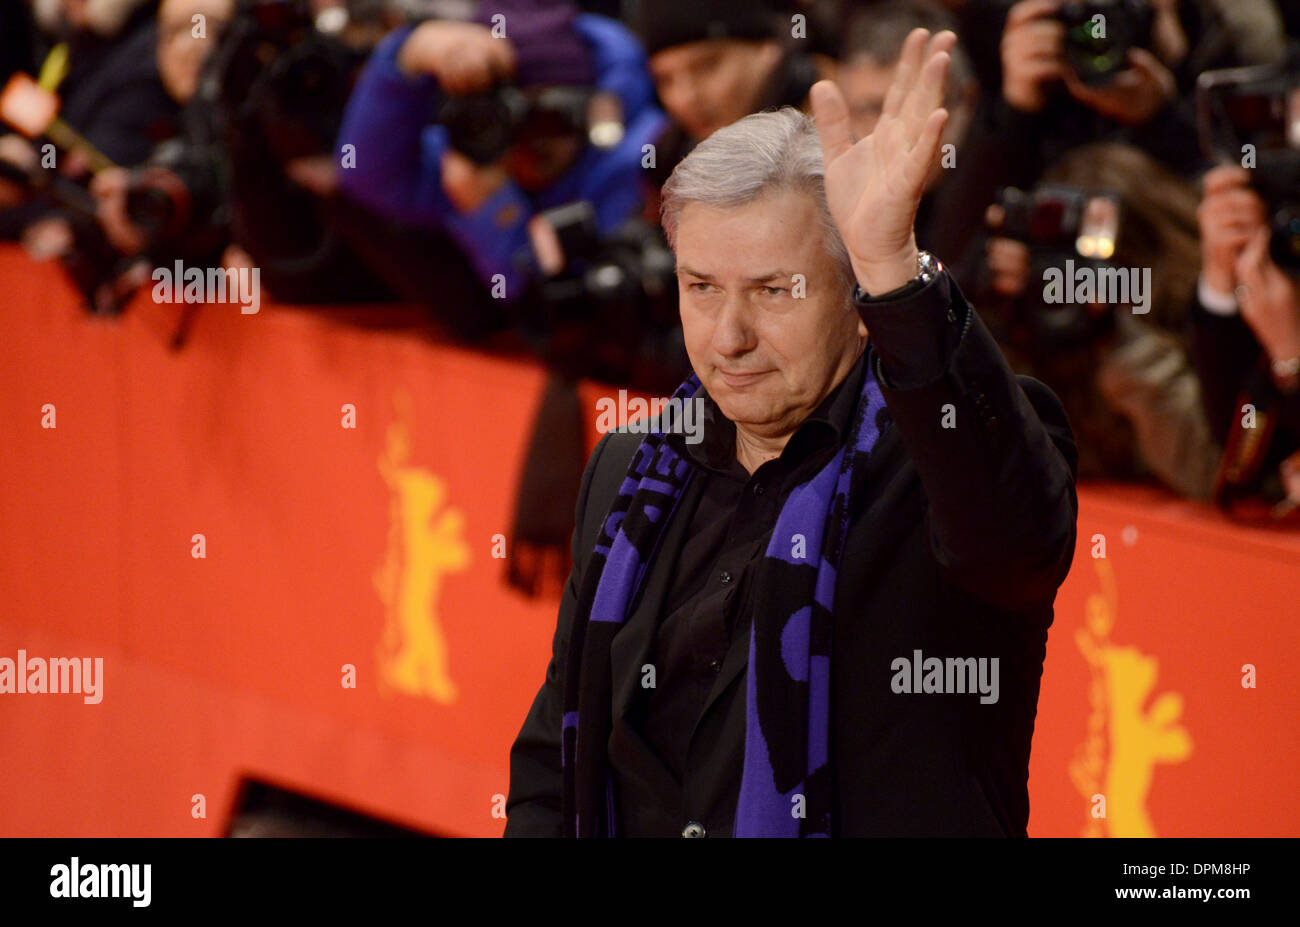 Klaus Wowereit - 63rd Annual Berlinale International Film Festival Closing Ceremony, Berlin - February 16th 2013 Stock Photo